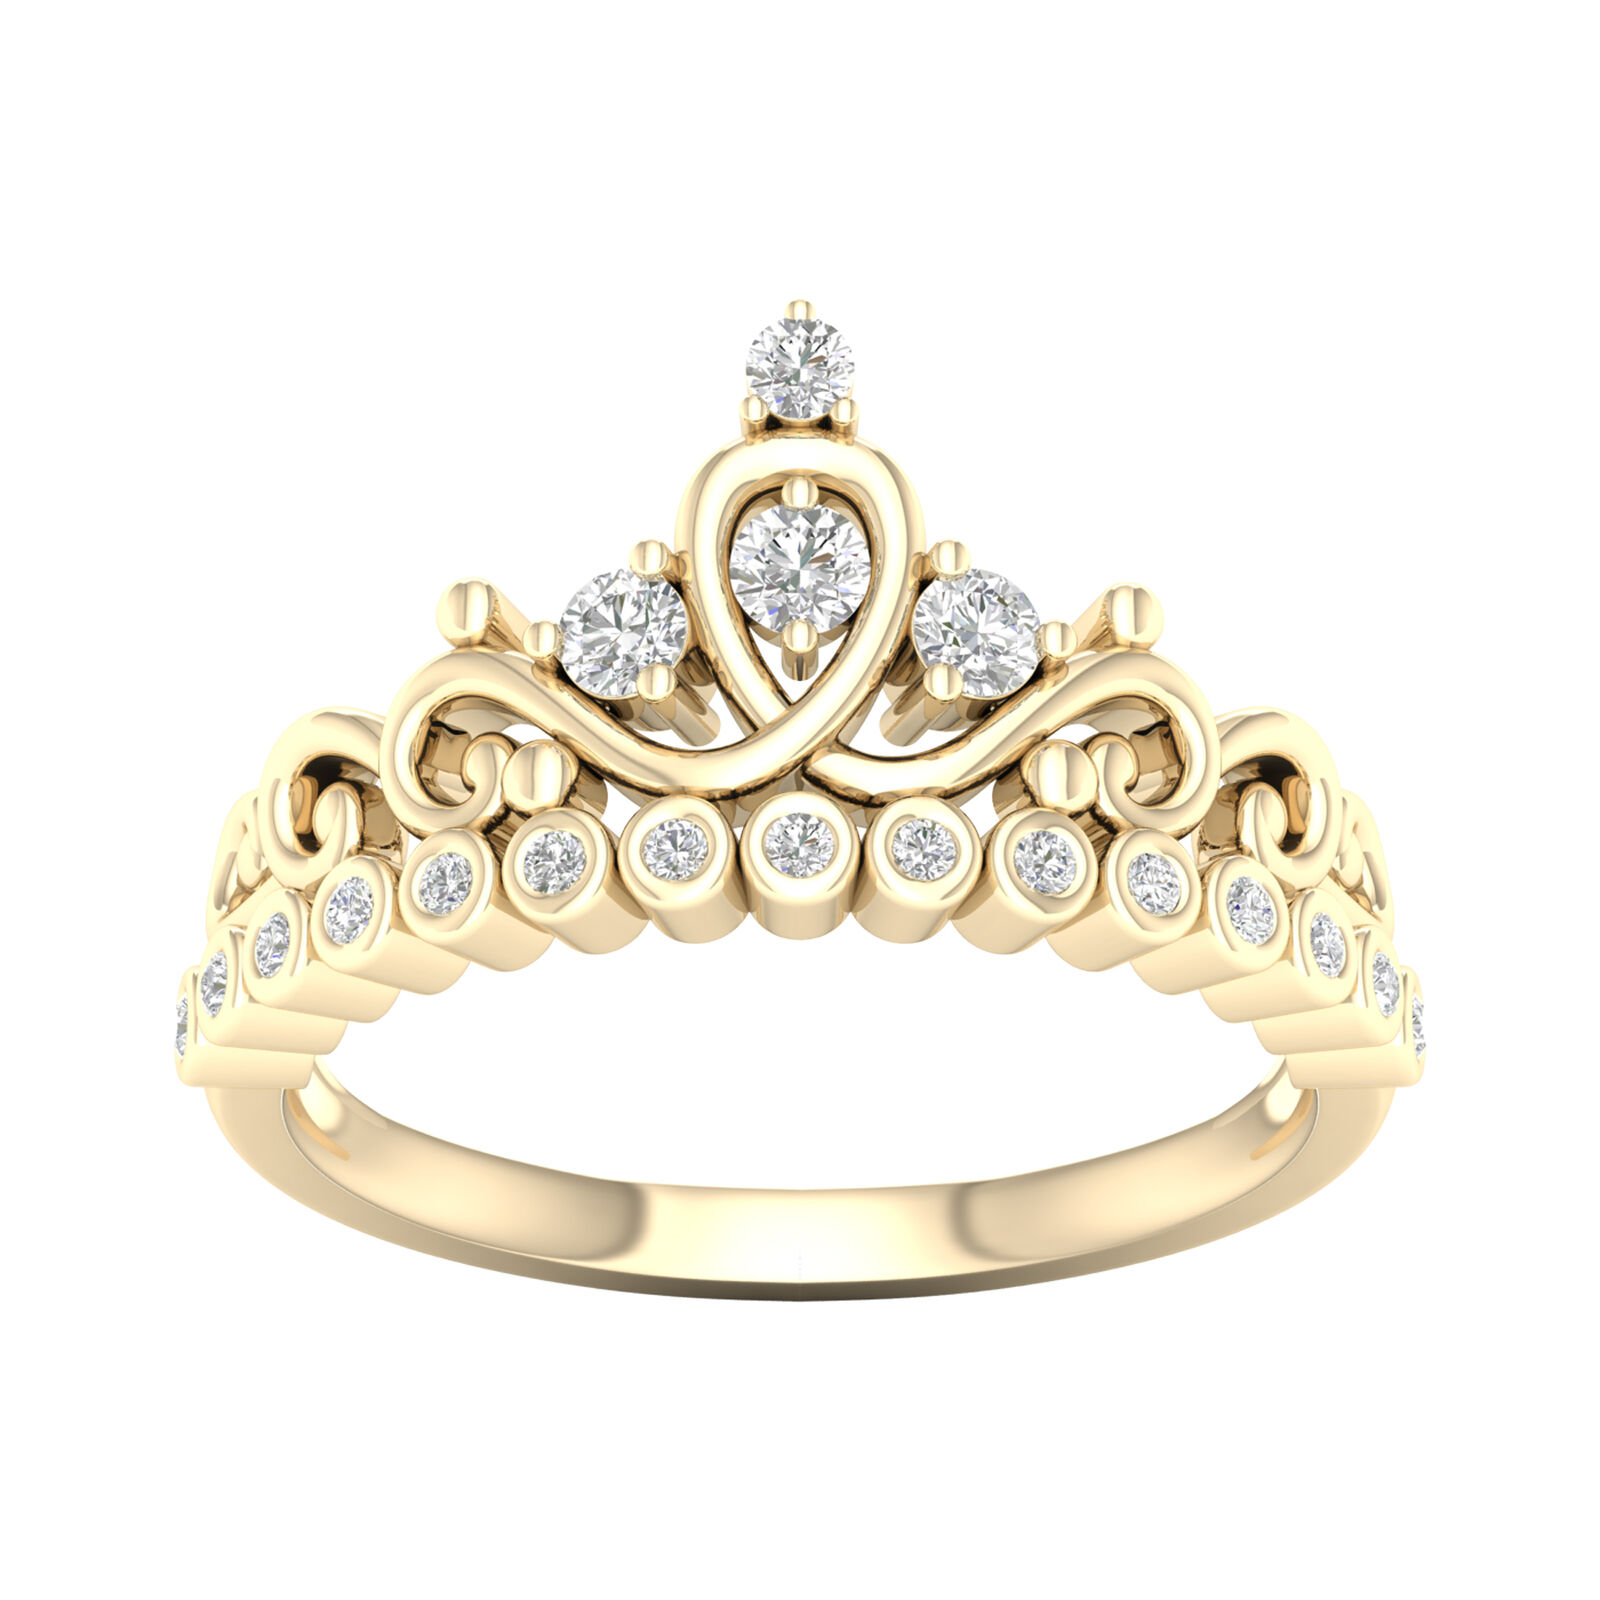 10k Yellow gold 1 4ct TDW Diamond Crown Ring